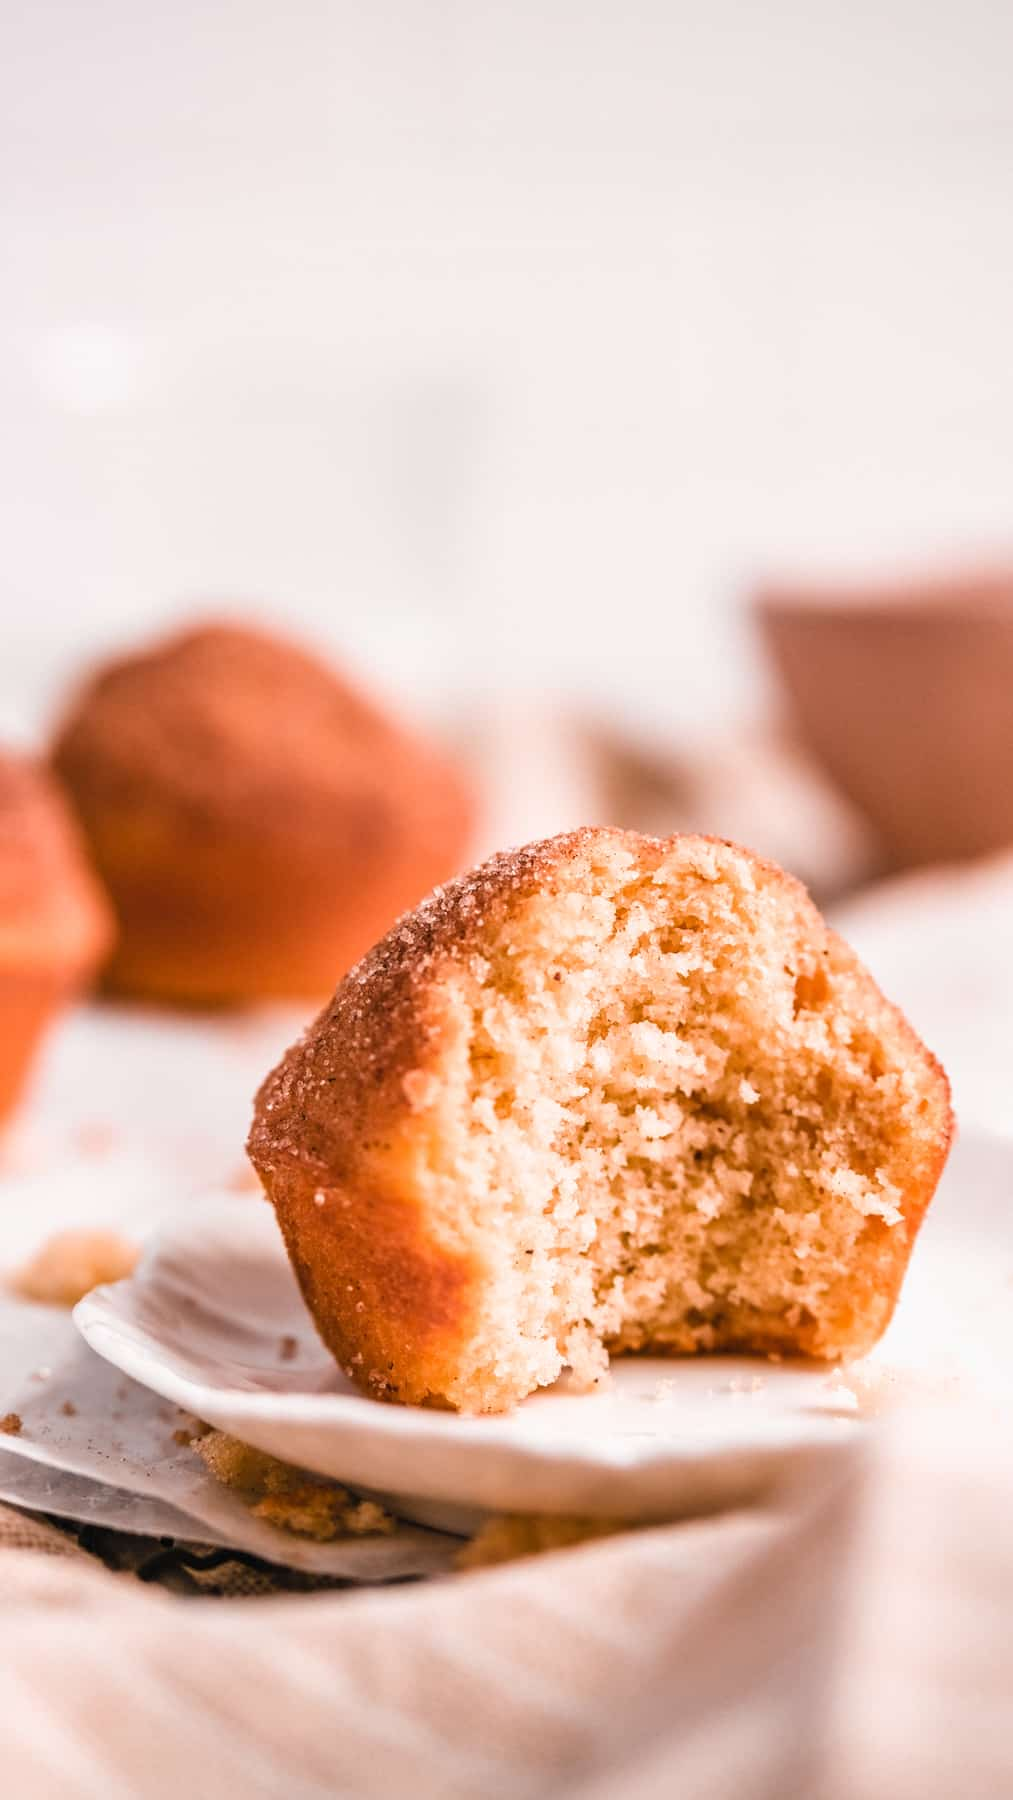 Cinnamon Donut Muffins on a plate with a bite out of it